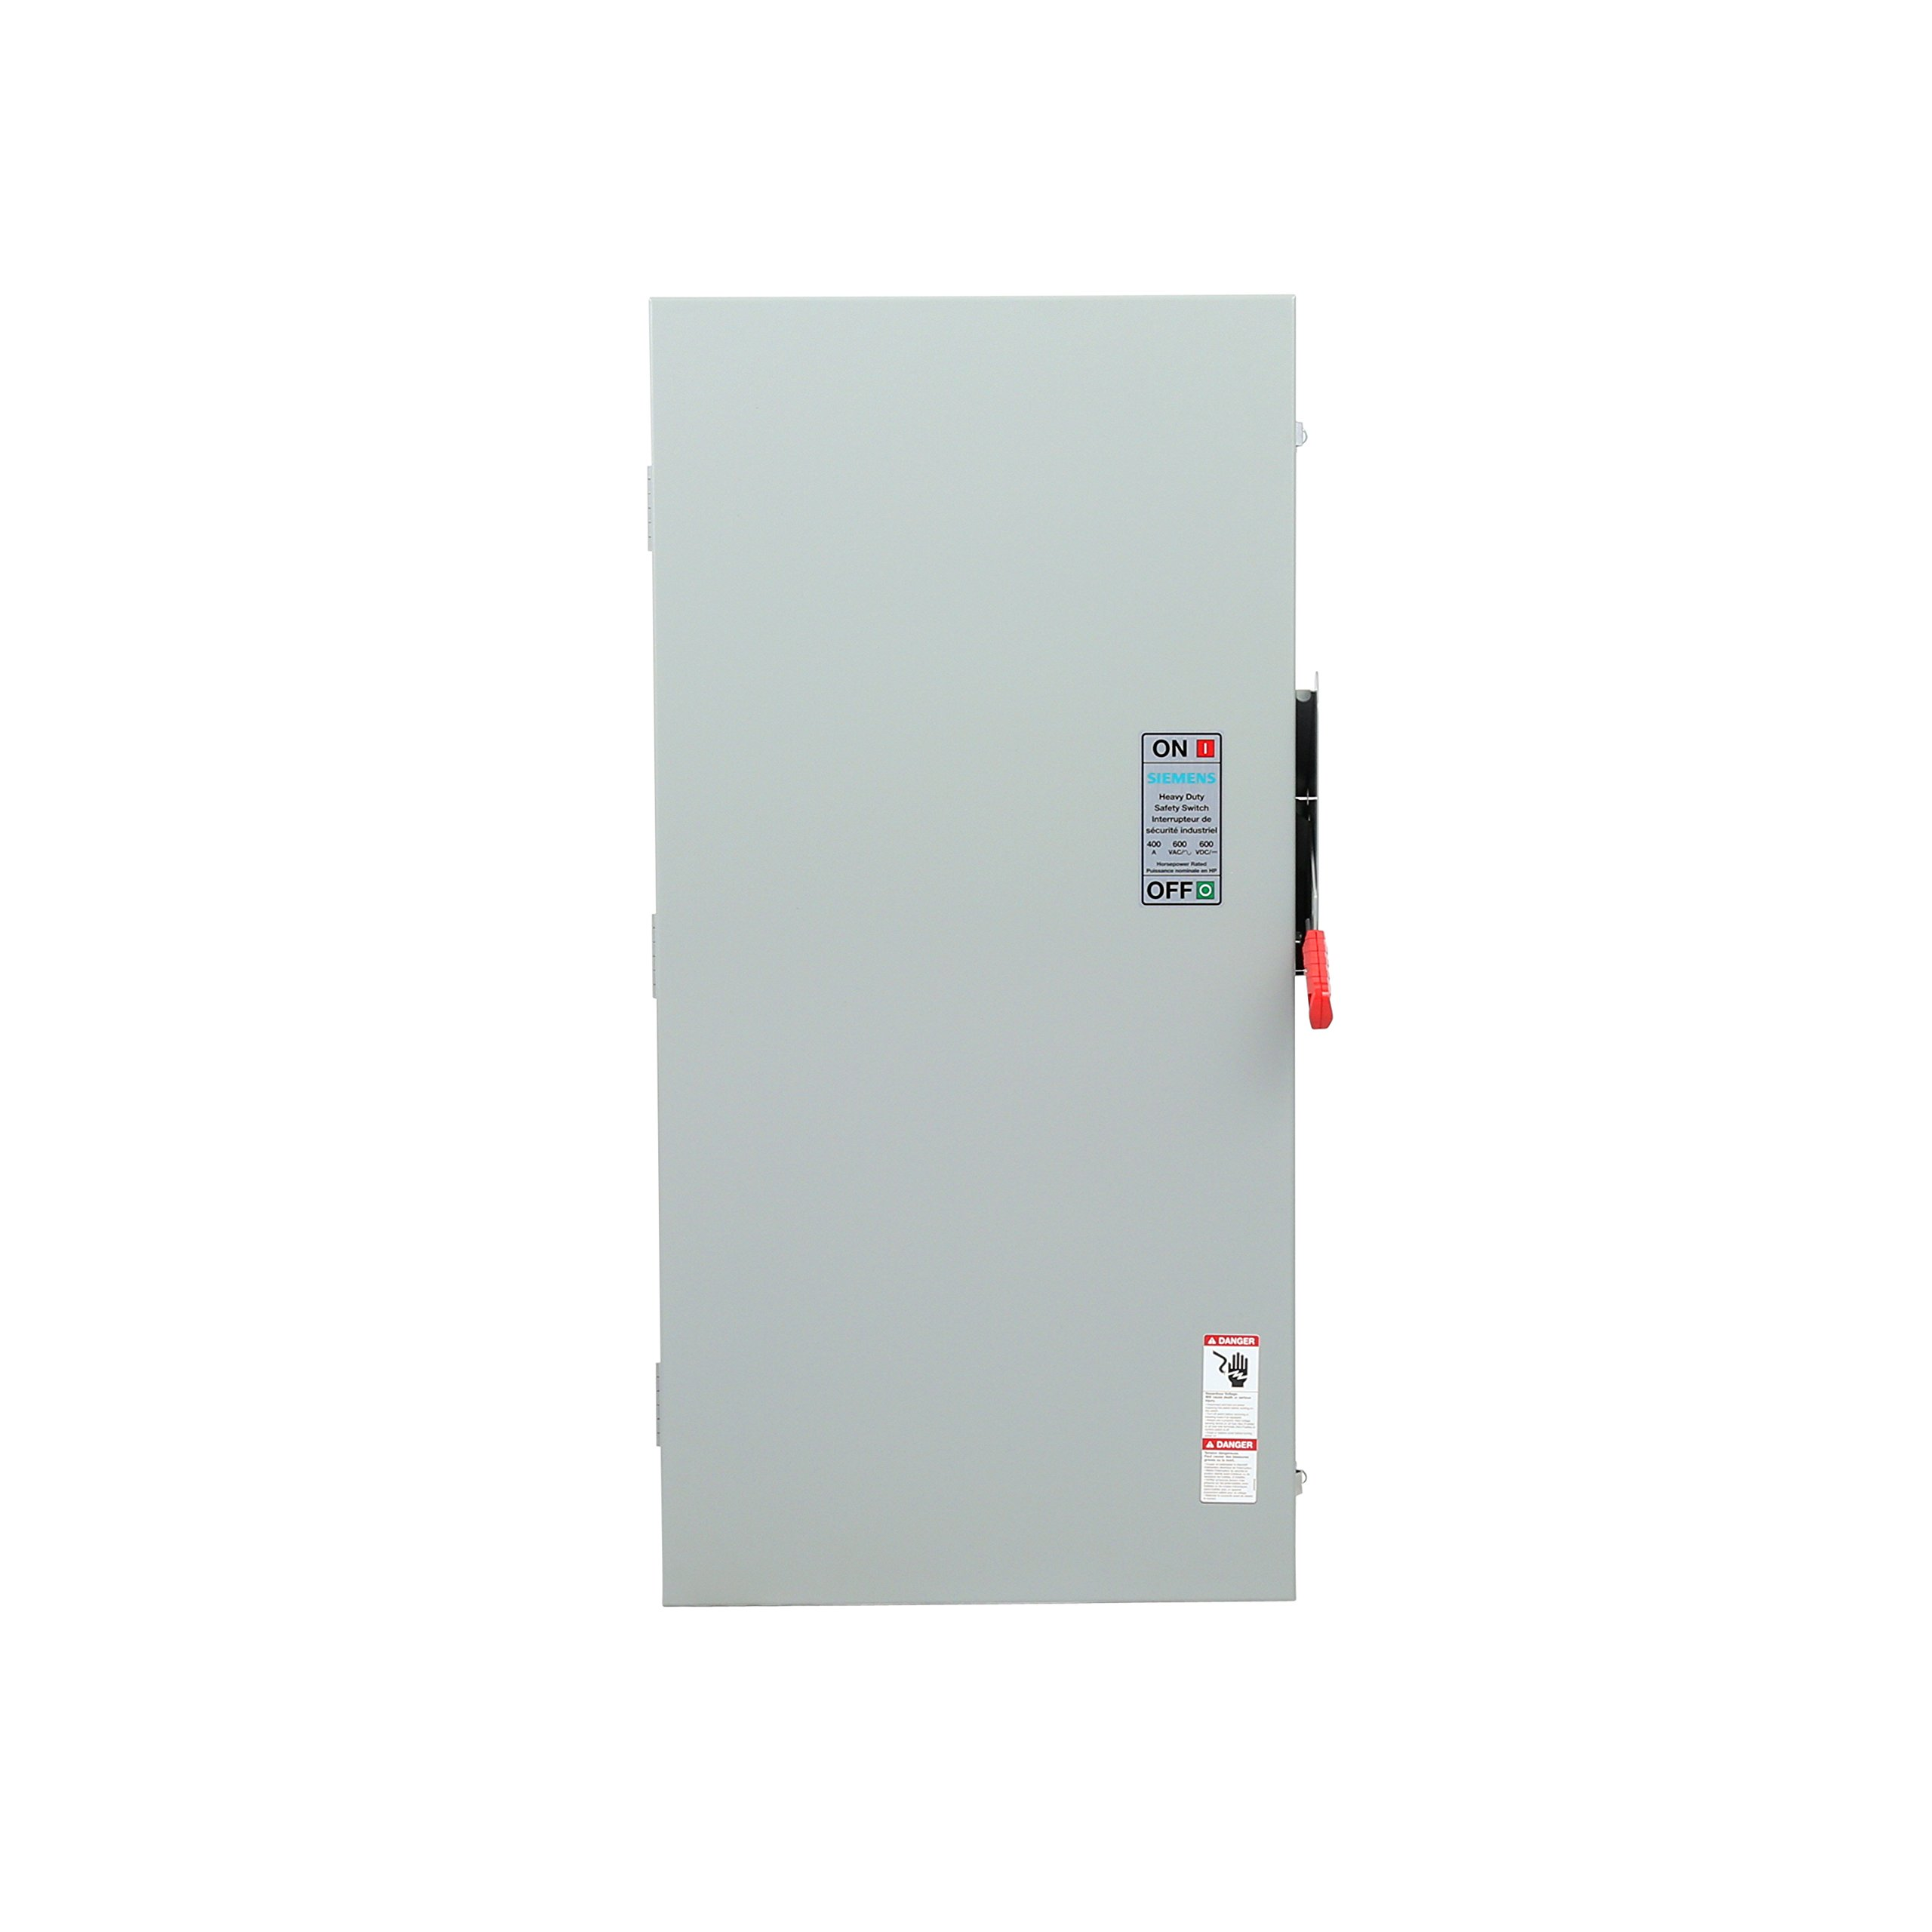 Siemens HF365A Heavy Duty SAFETY Switch, Fusible, 3 Pole, 600 Volt, 400 Amp, Indoor Rated